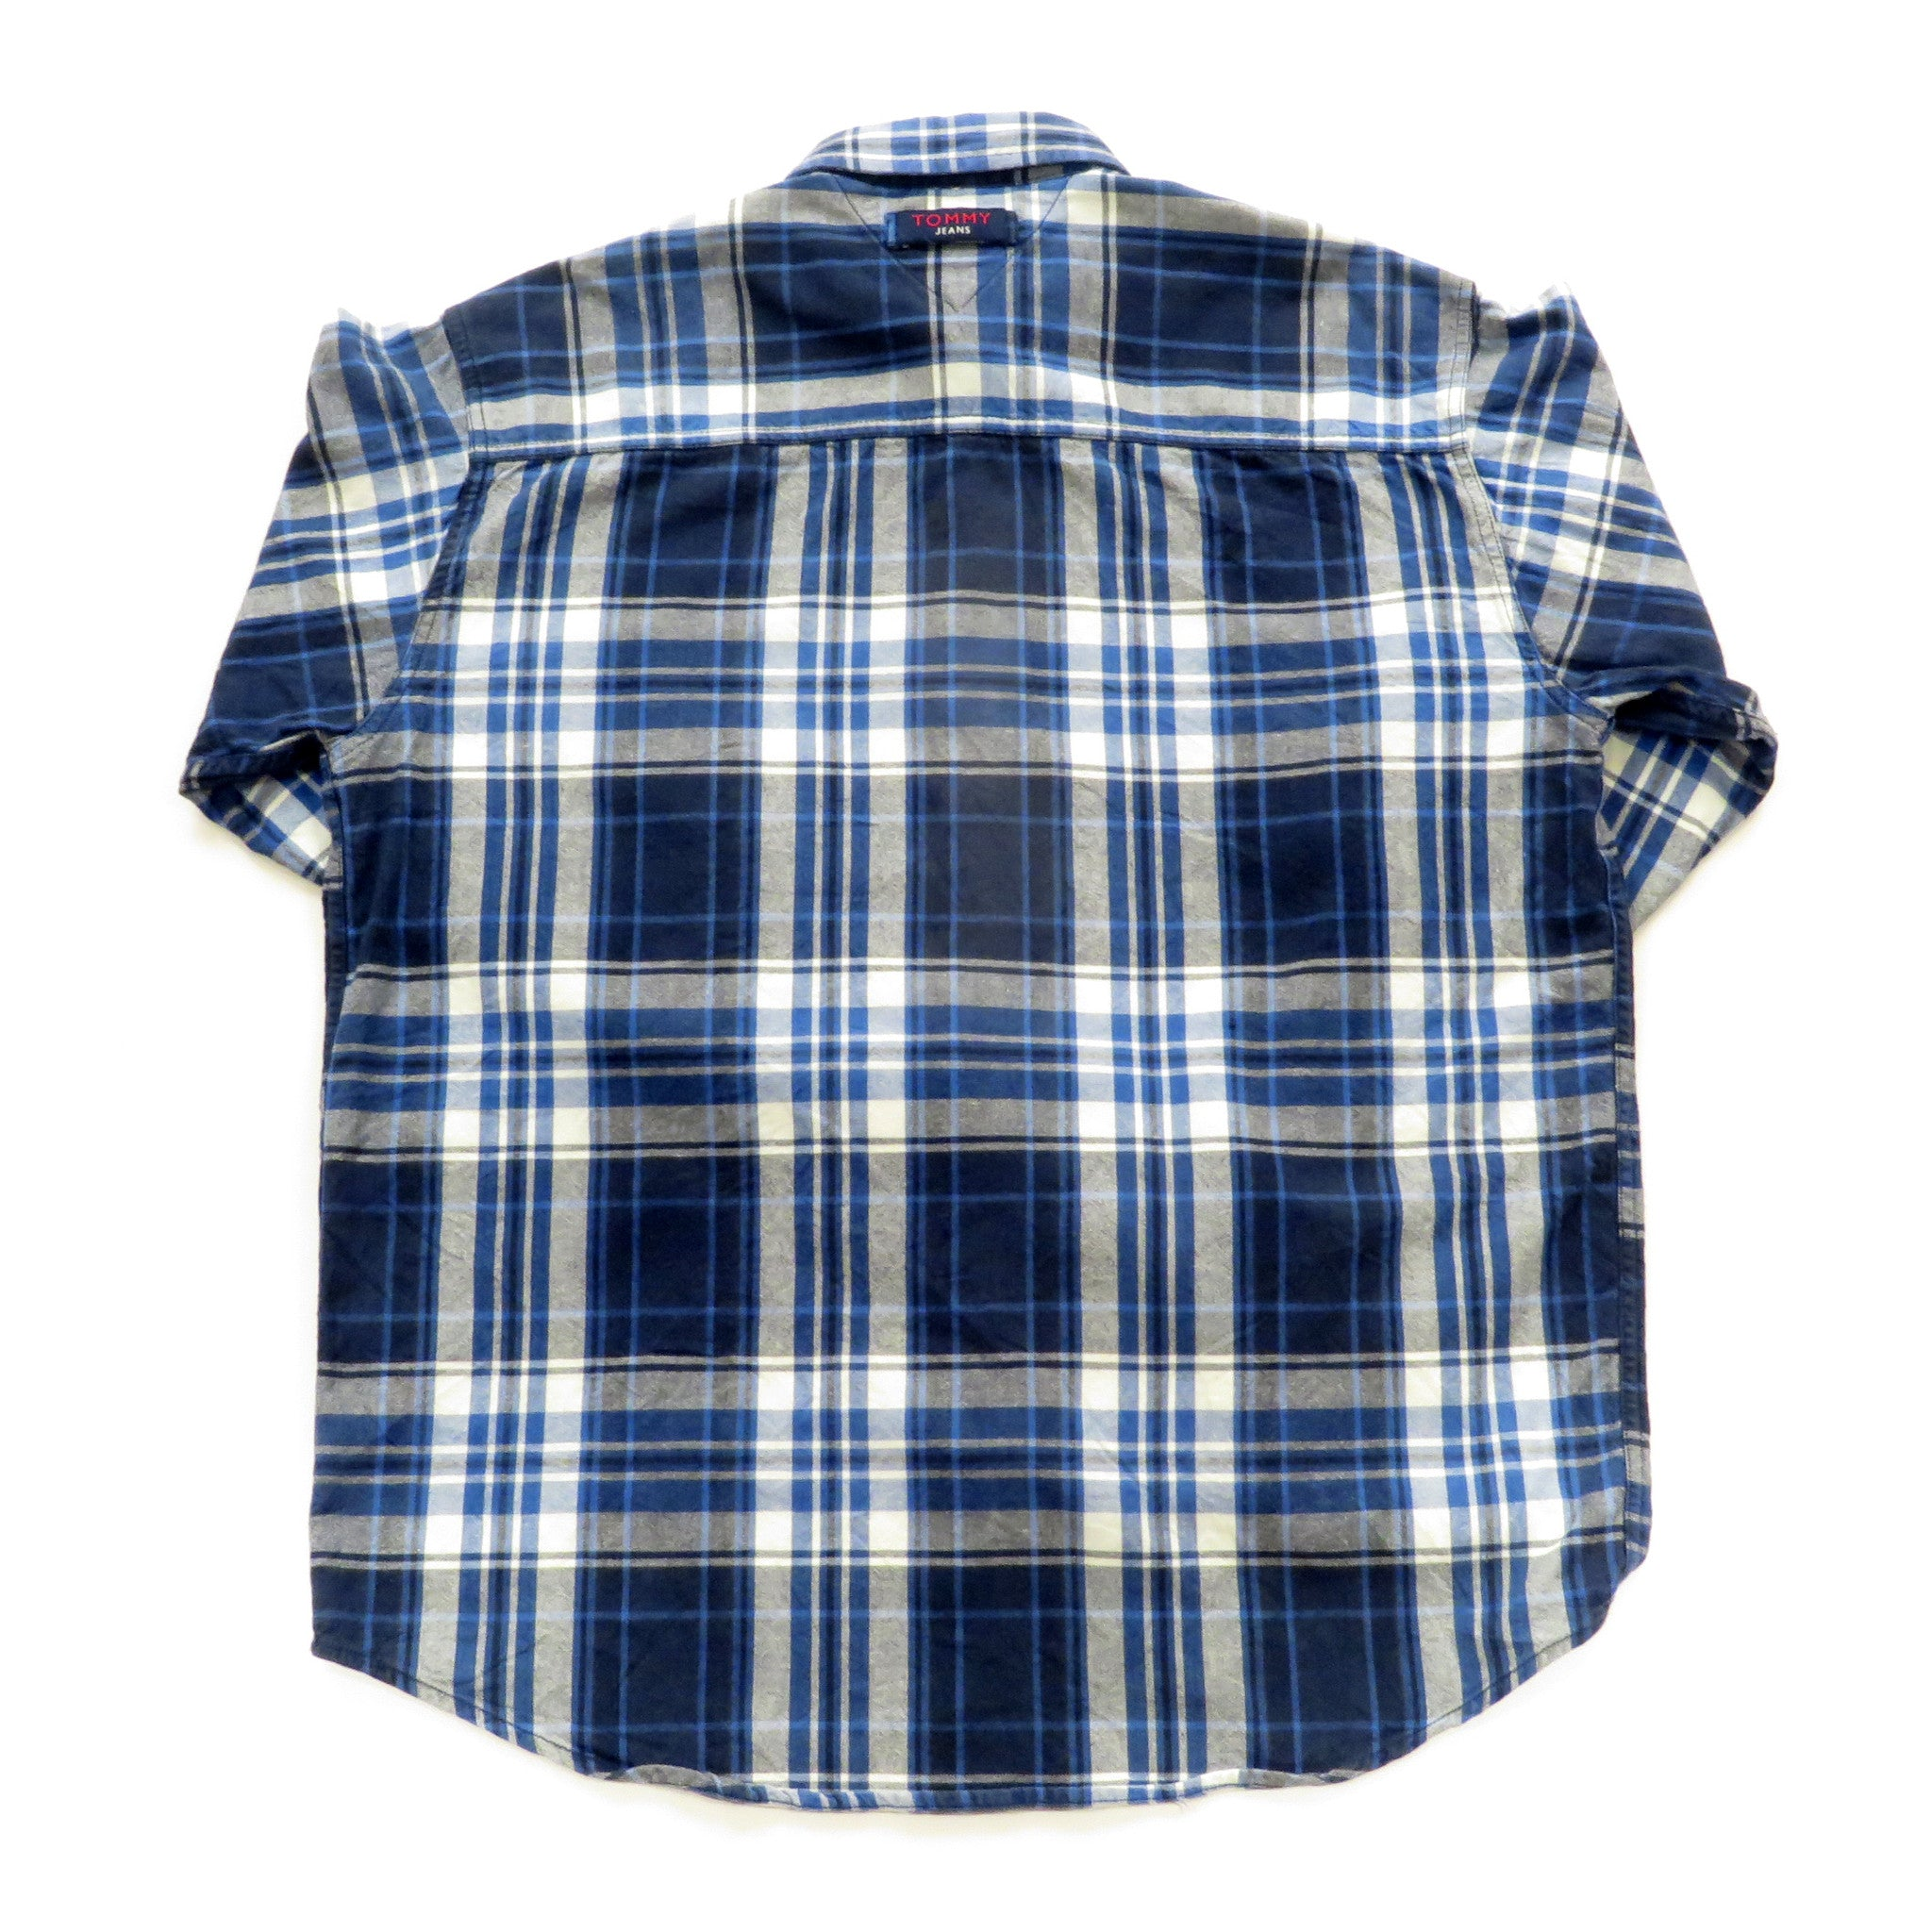 Tommy Hilfiger Tommy Jeans Plaid Button Down Shirt Sz M